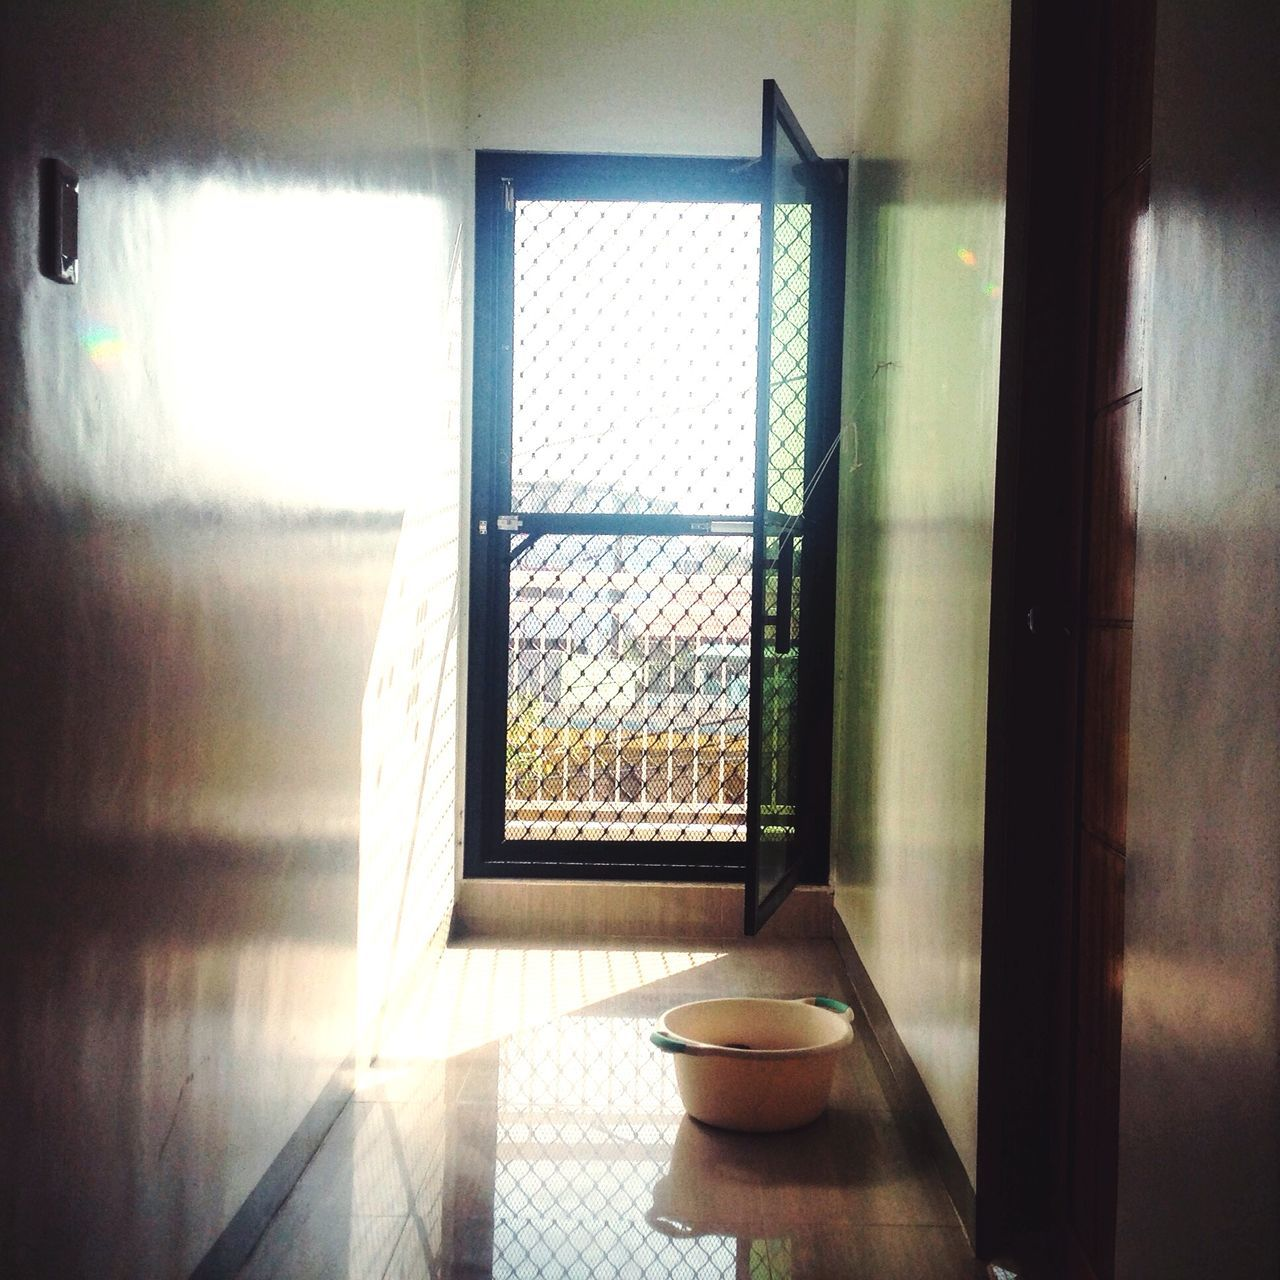 window, indoors, sunlight, day, no people, home interior, shadow, curtain, close-up